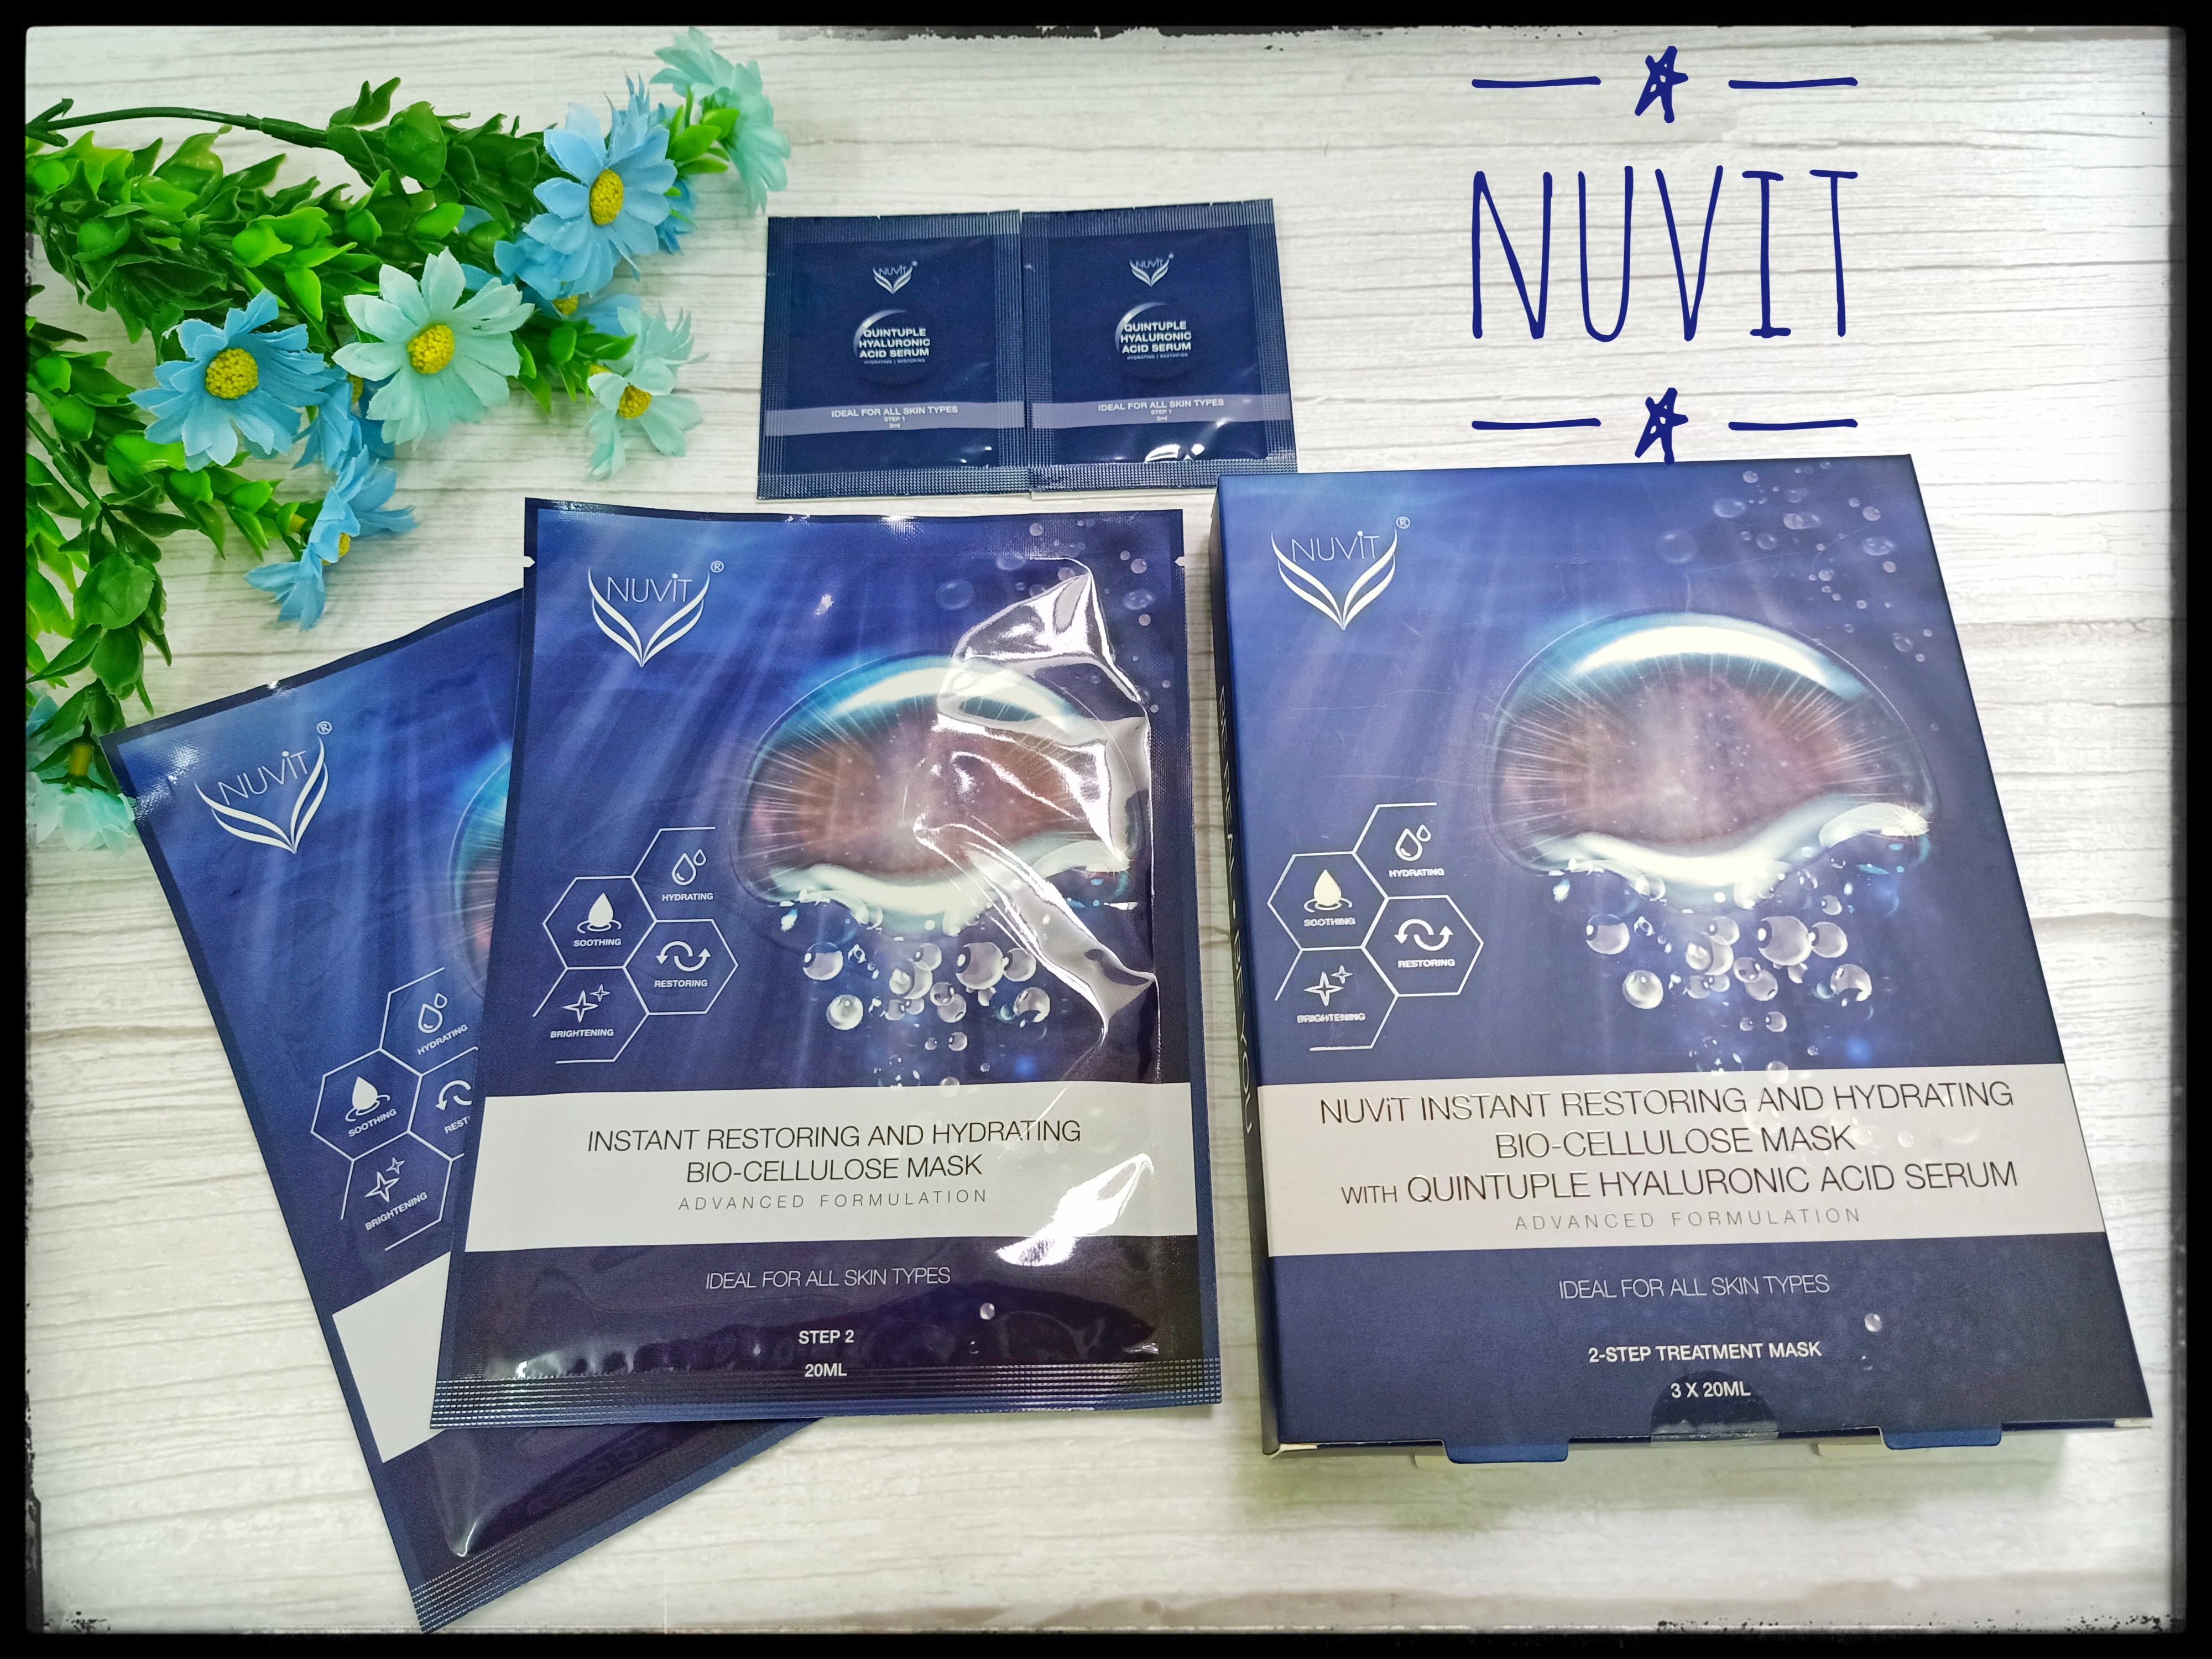 Tried Bio Cellulose Mask From Nuvit? Nuvit Instant Restoring & Hydrating Bio-Cellulose